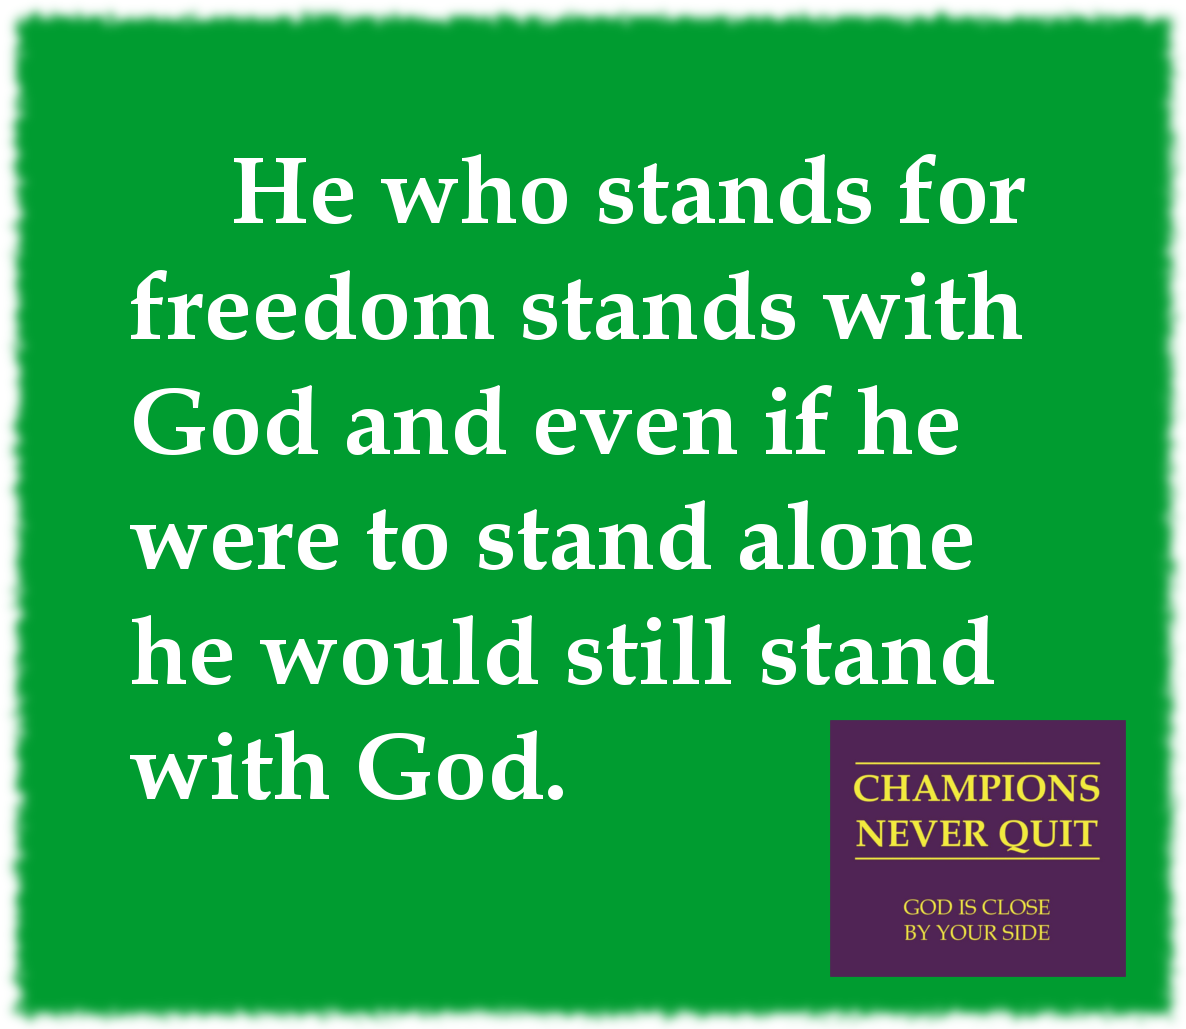 He who stands for freedom stands with God